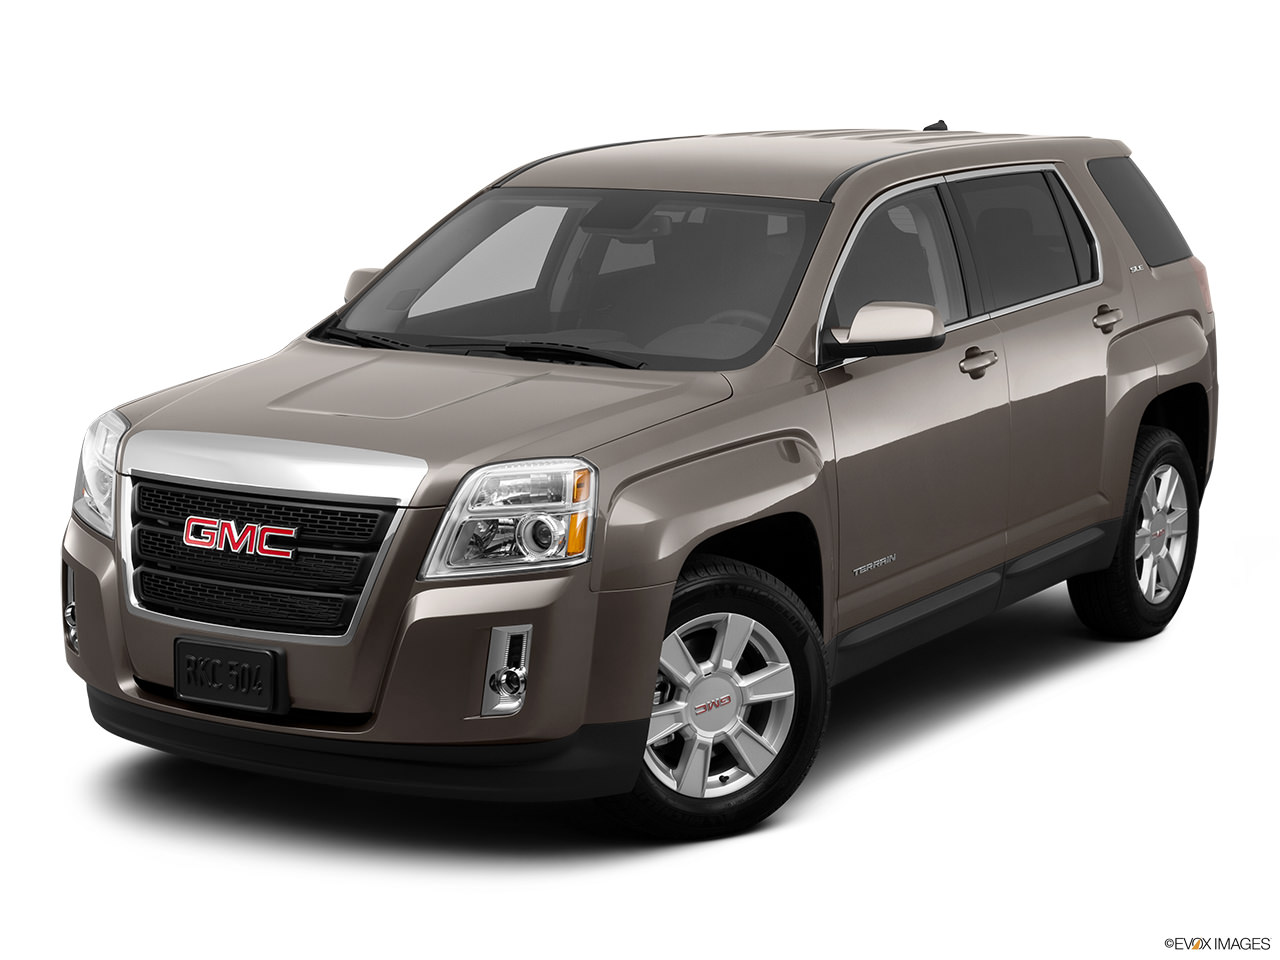 2012 chevrolet equinox vs 2012 gmc terrain which one. Black Bedroom Furniture Sets. Home Design Ideas